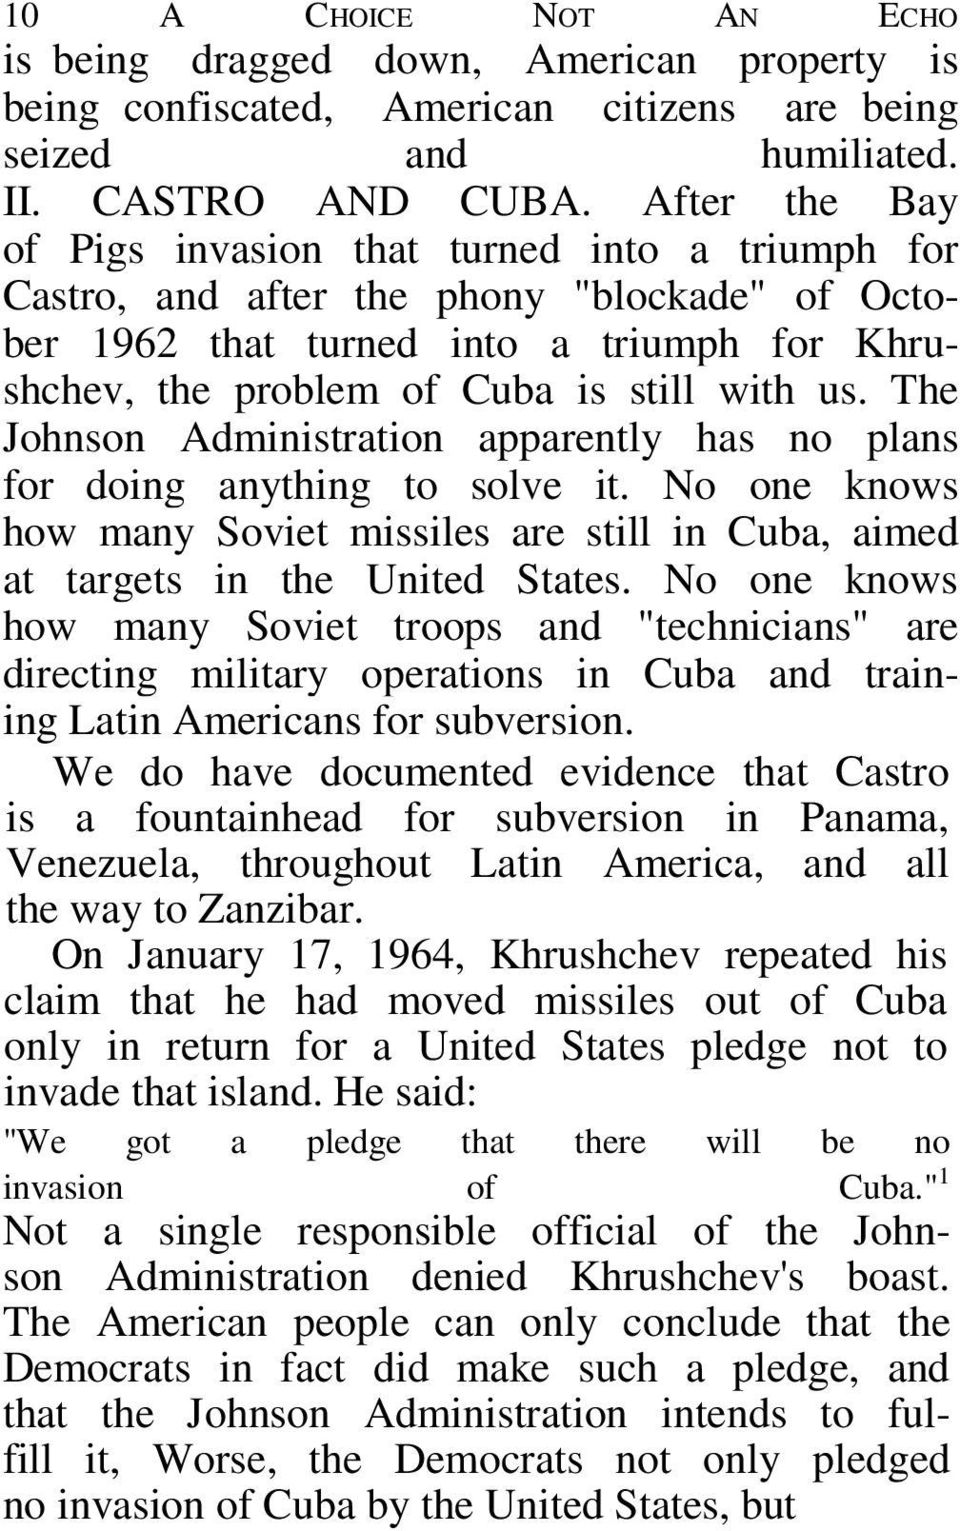 The Johnson Administration apparently has no plans for doing anything to solve it. No one knows how many Soviet missiles are still in Cuba, aimed at targets in the United States.